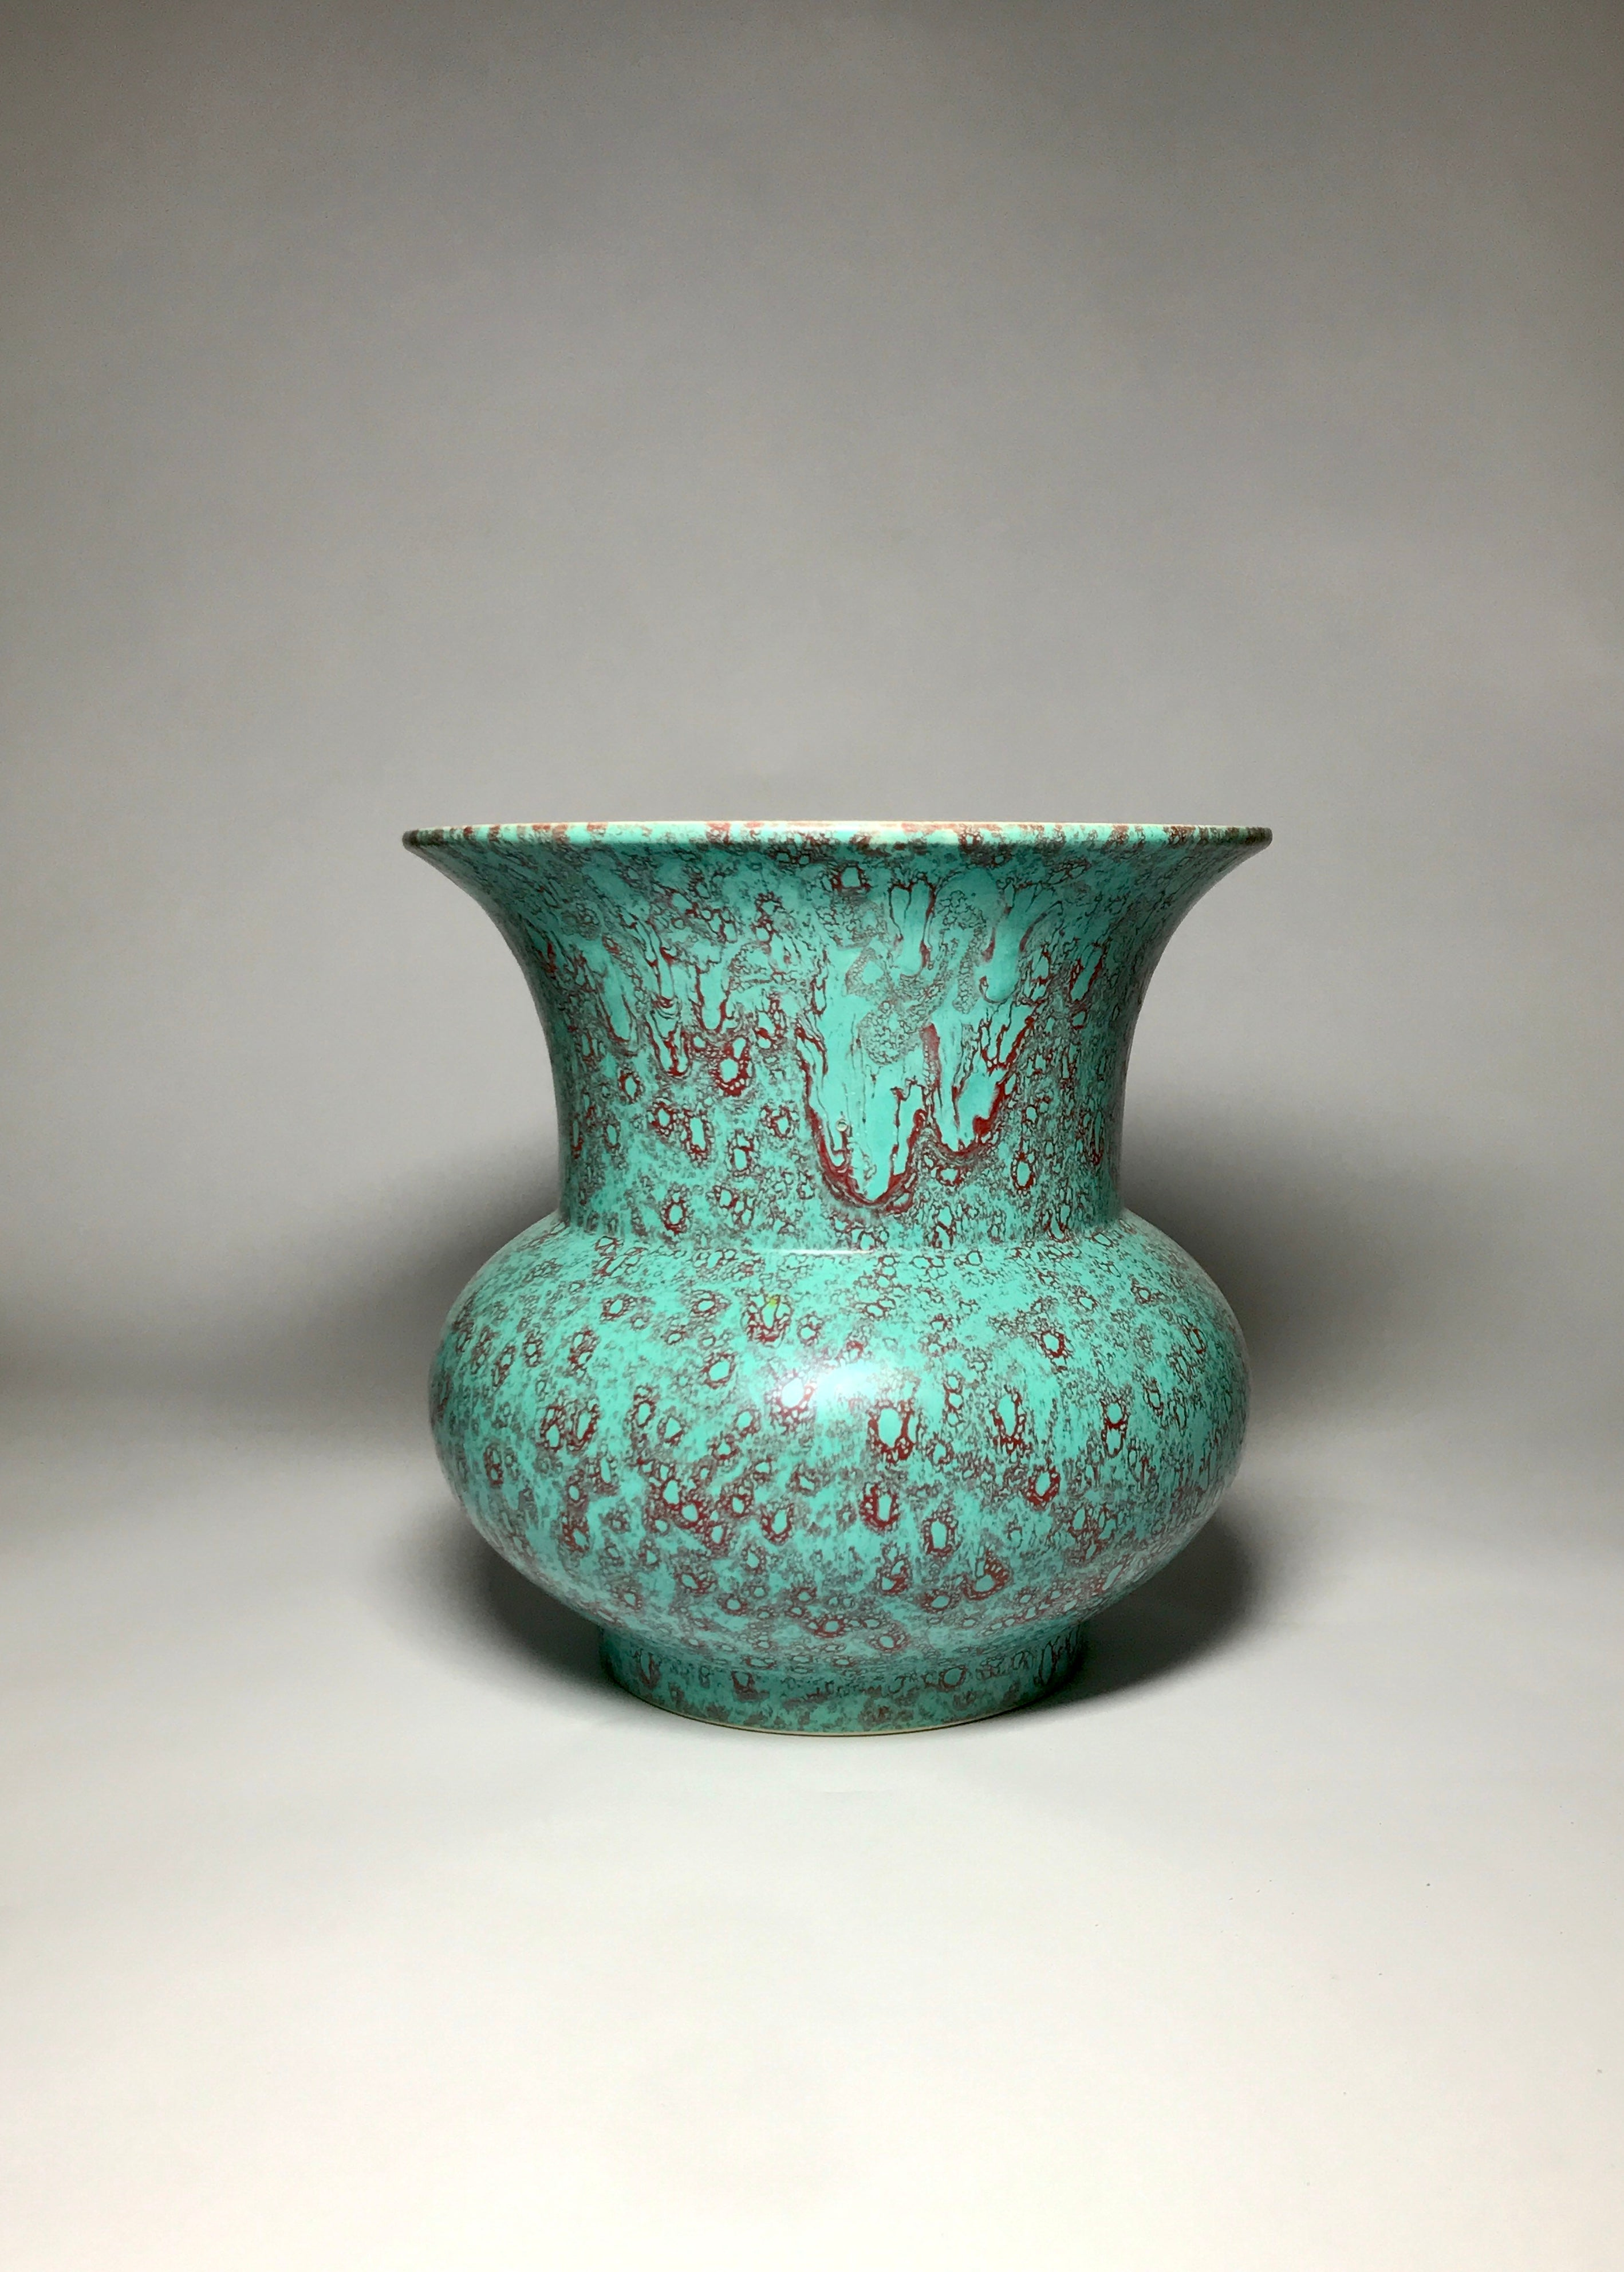 Qing Dynasty Zhadou/Spittoon - 10 Dynasties